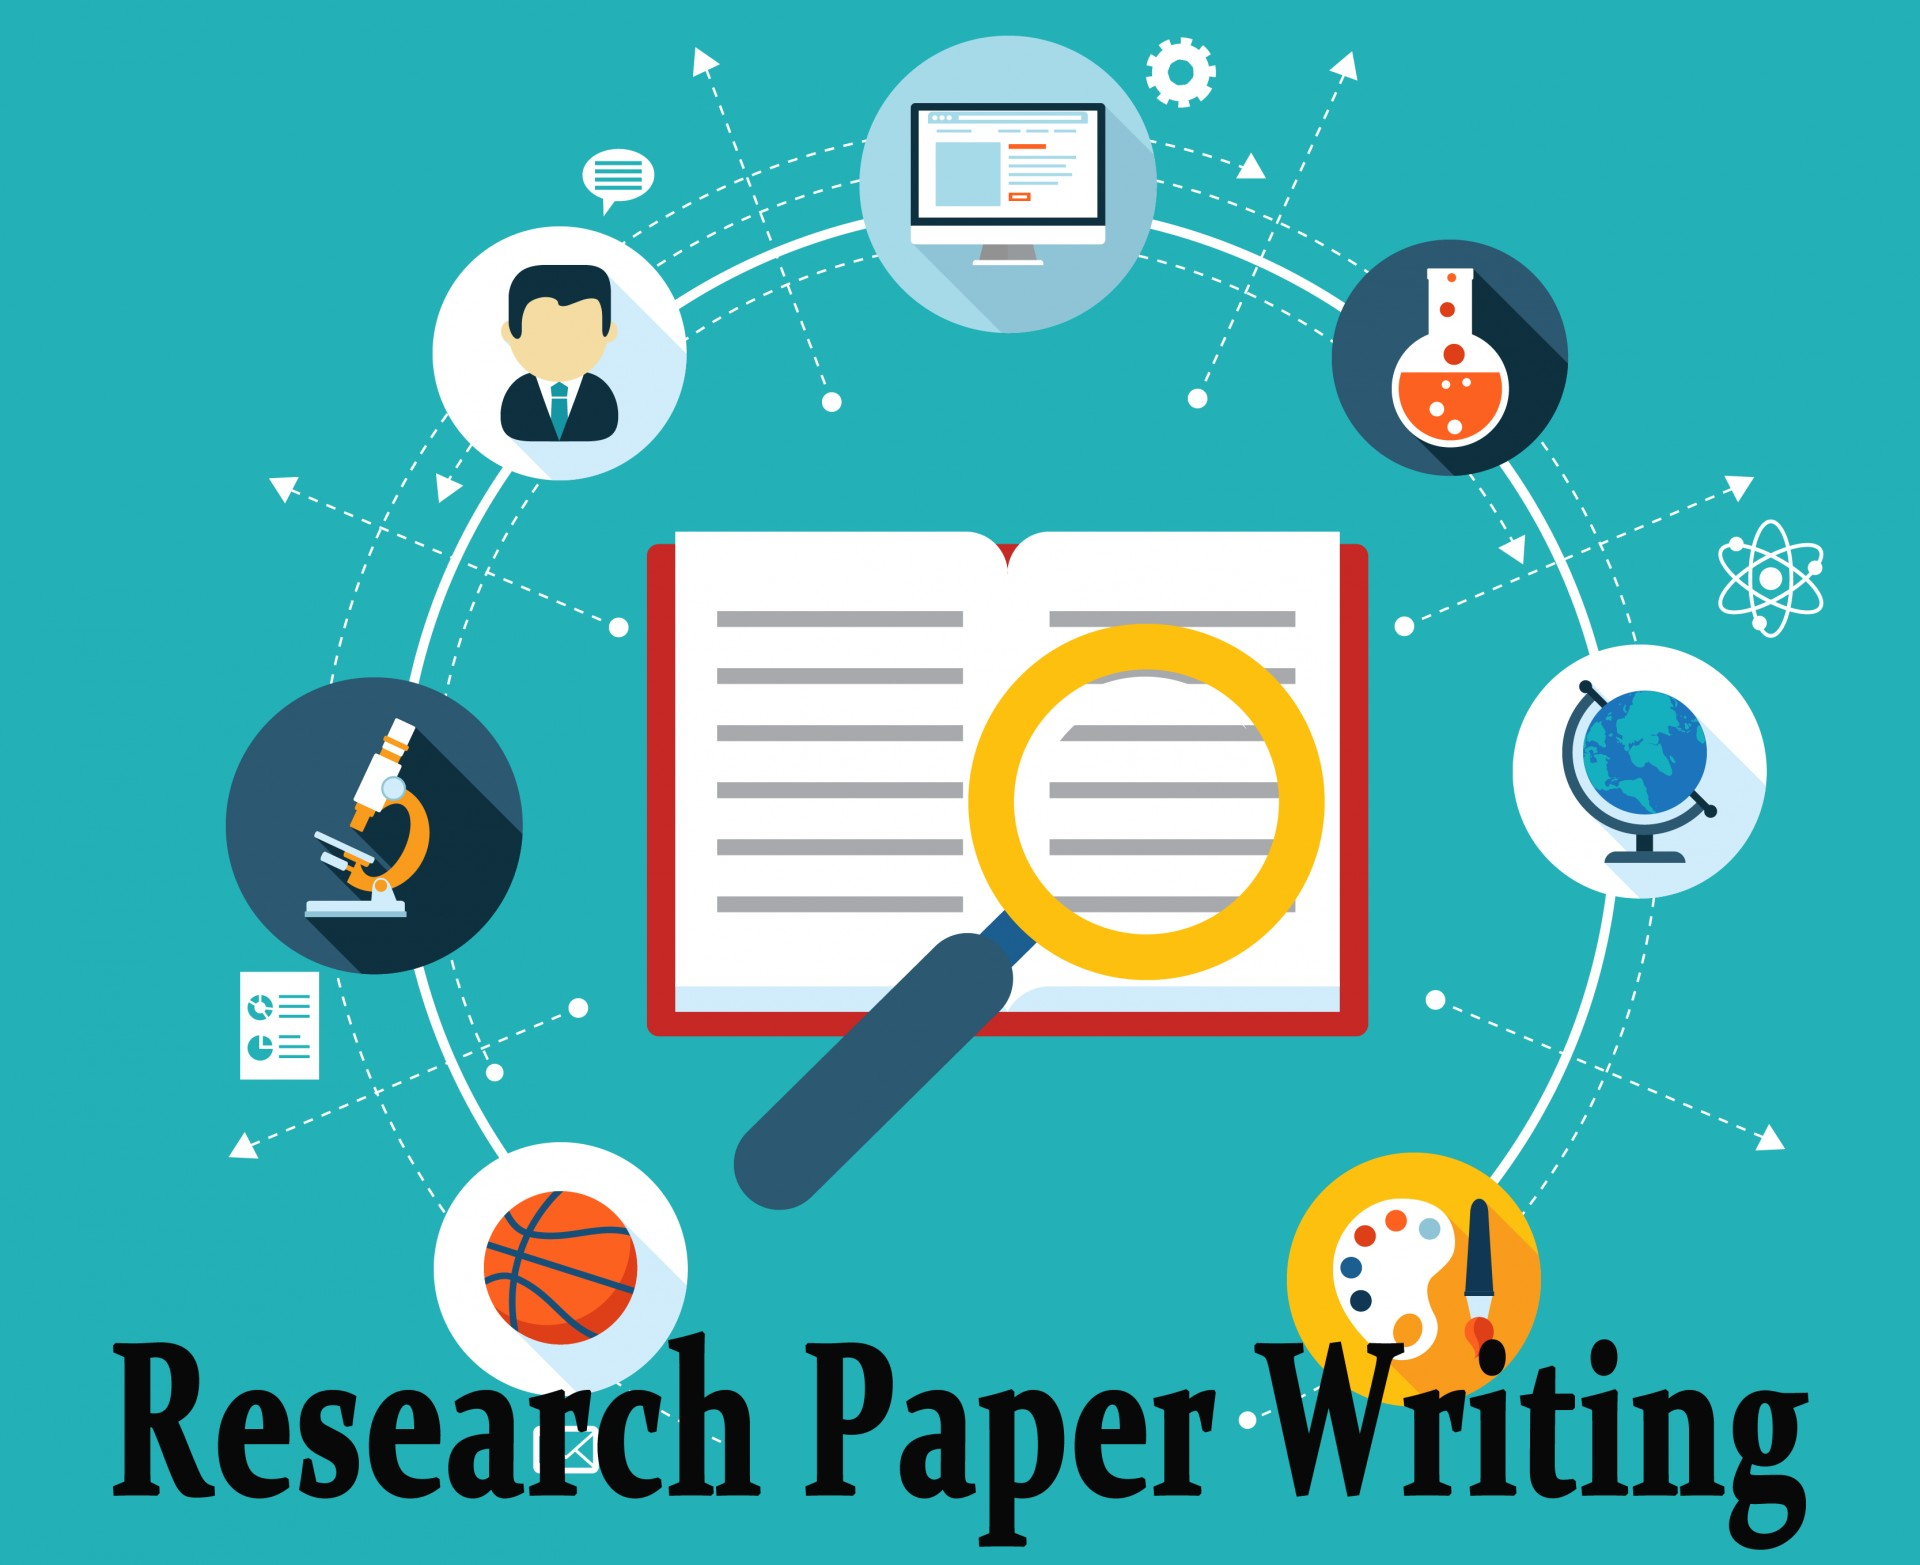 015 Research Paper 503 Effective Striking Writing Papers Across The Curriculum Pdf 15th Edition Lester 1920